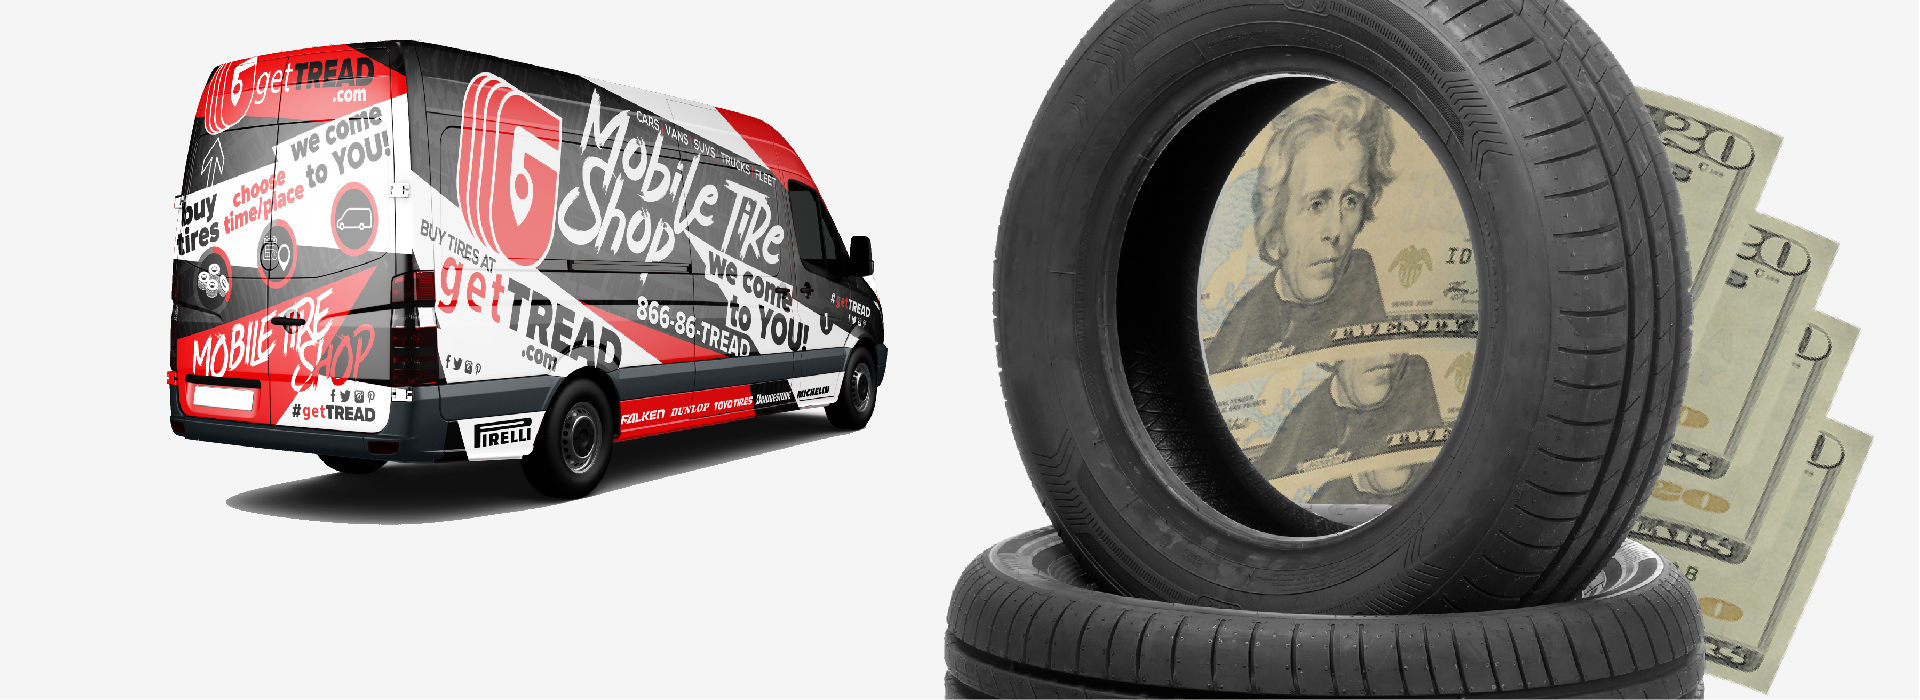 We offer mobile tire shop services for fleet vehicles